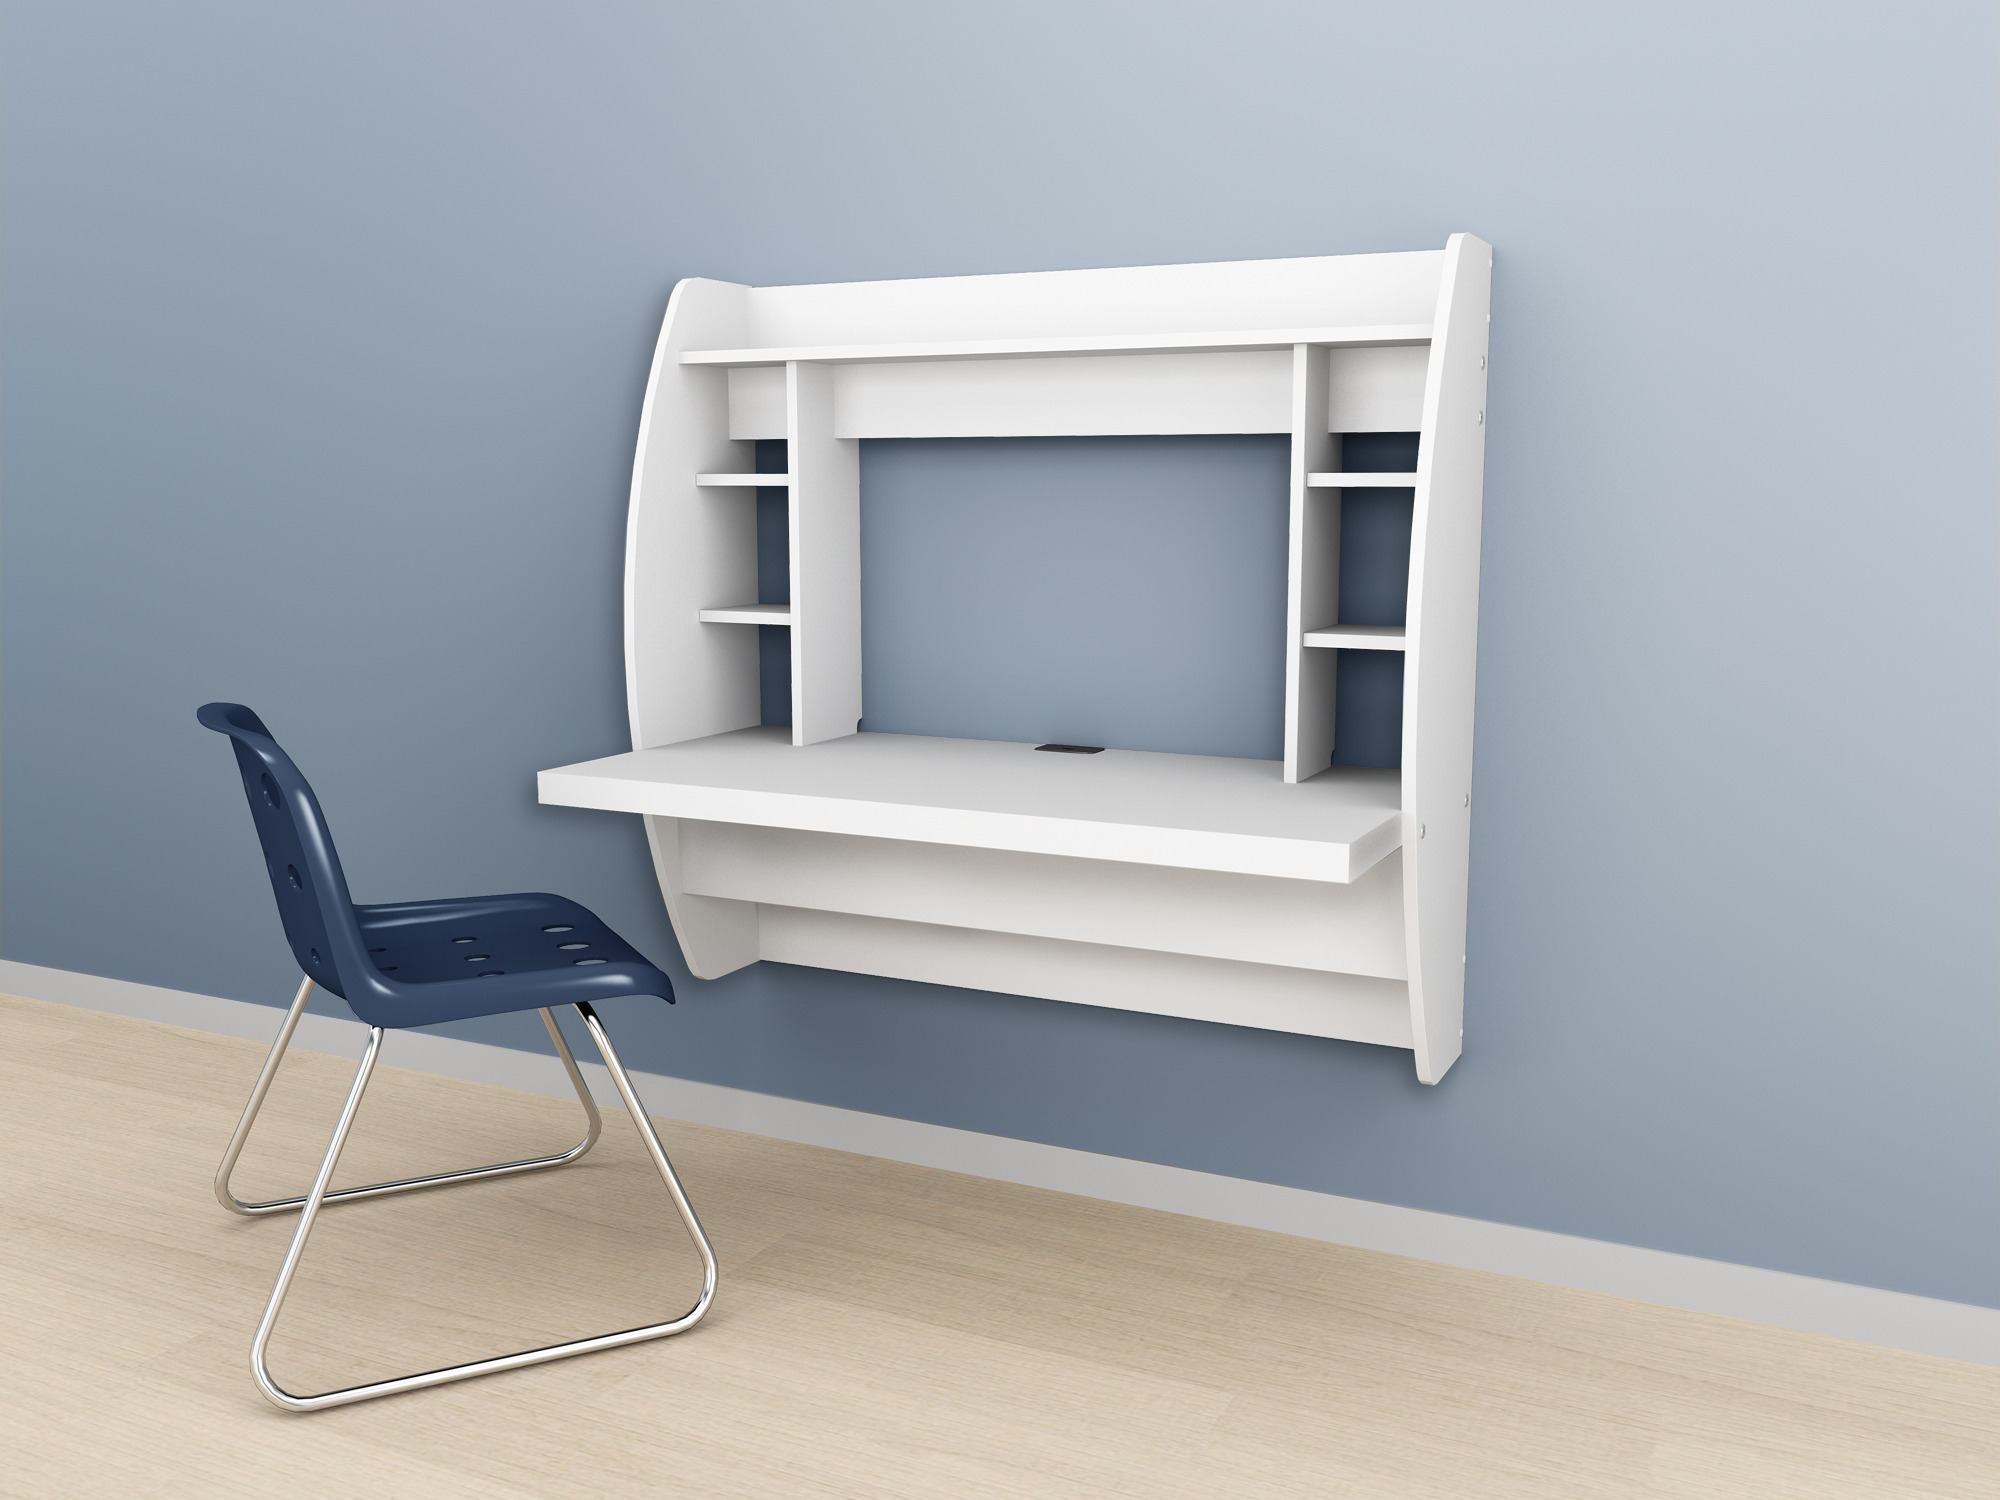 Wall Mounted Prepac Floating Storage Desk – White Black